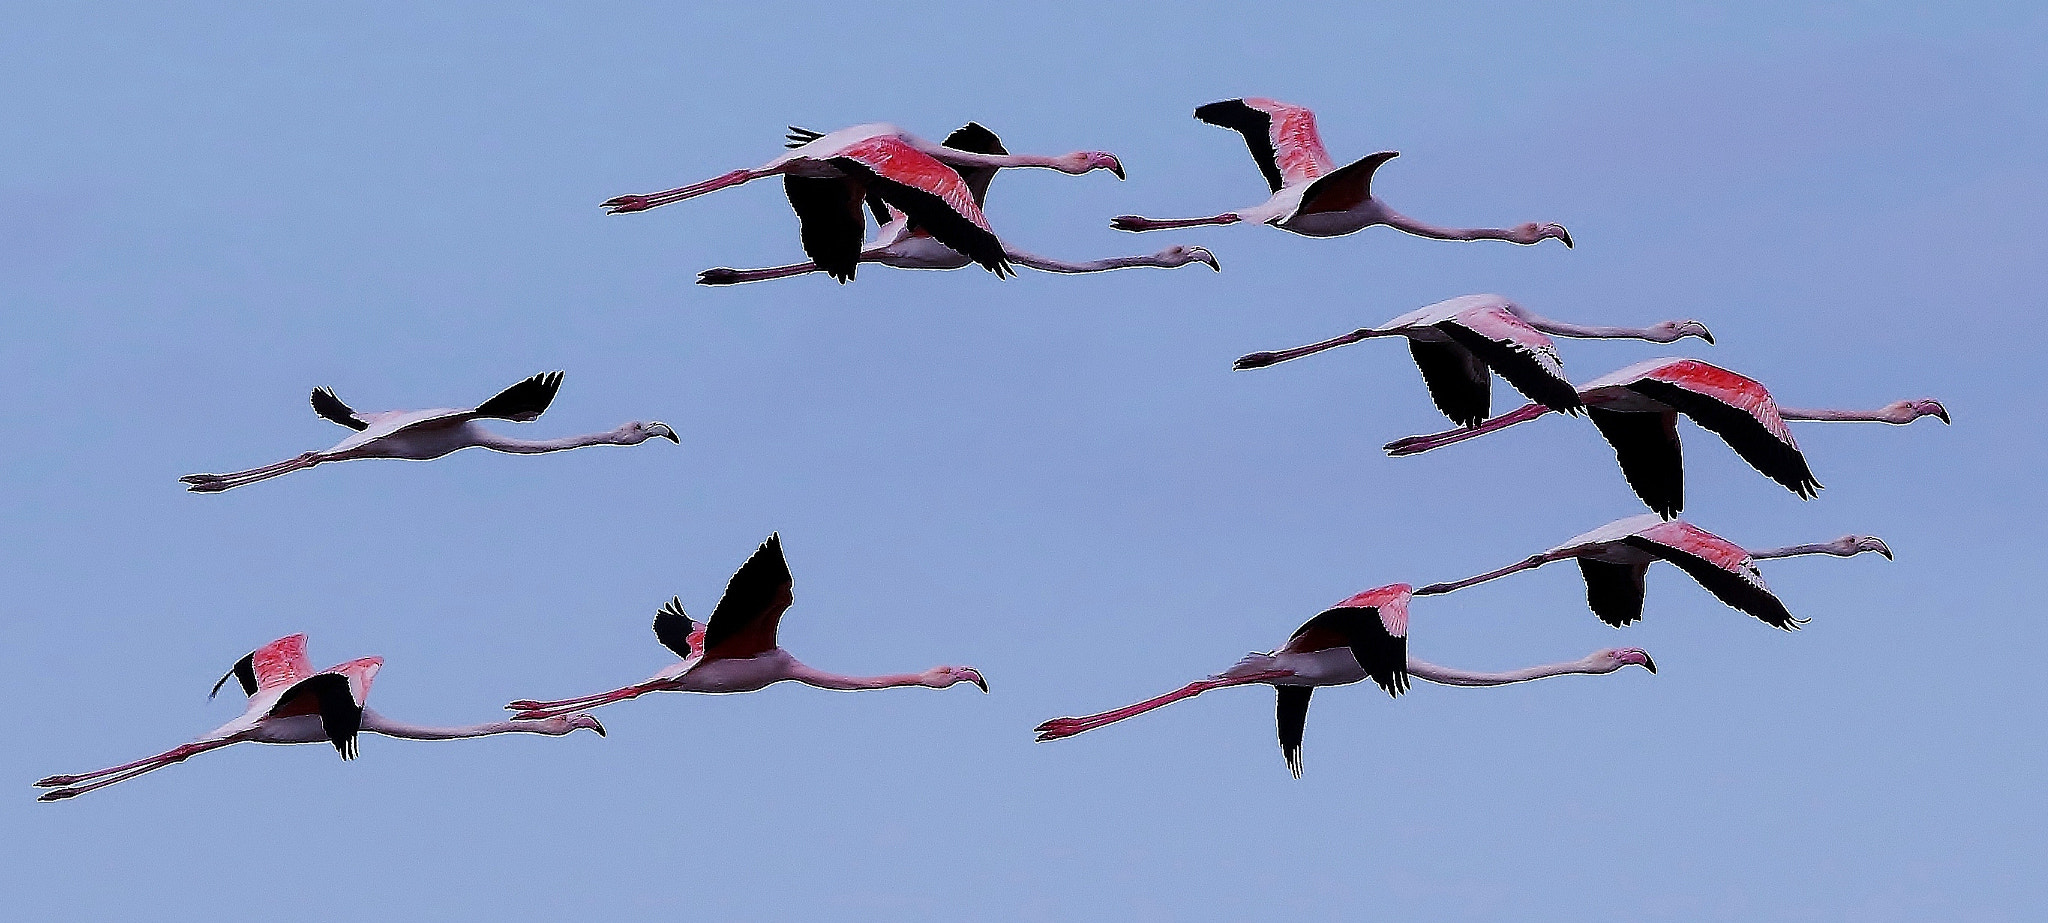 Photograph Snobs Formation by Avi Ben-Har on 500px